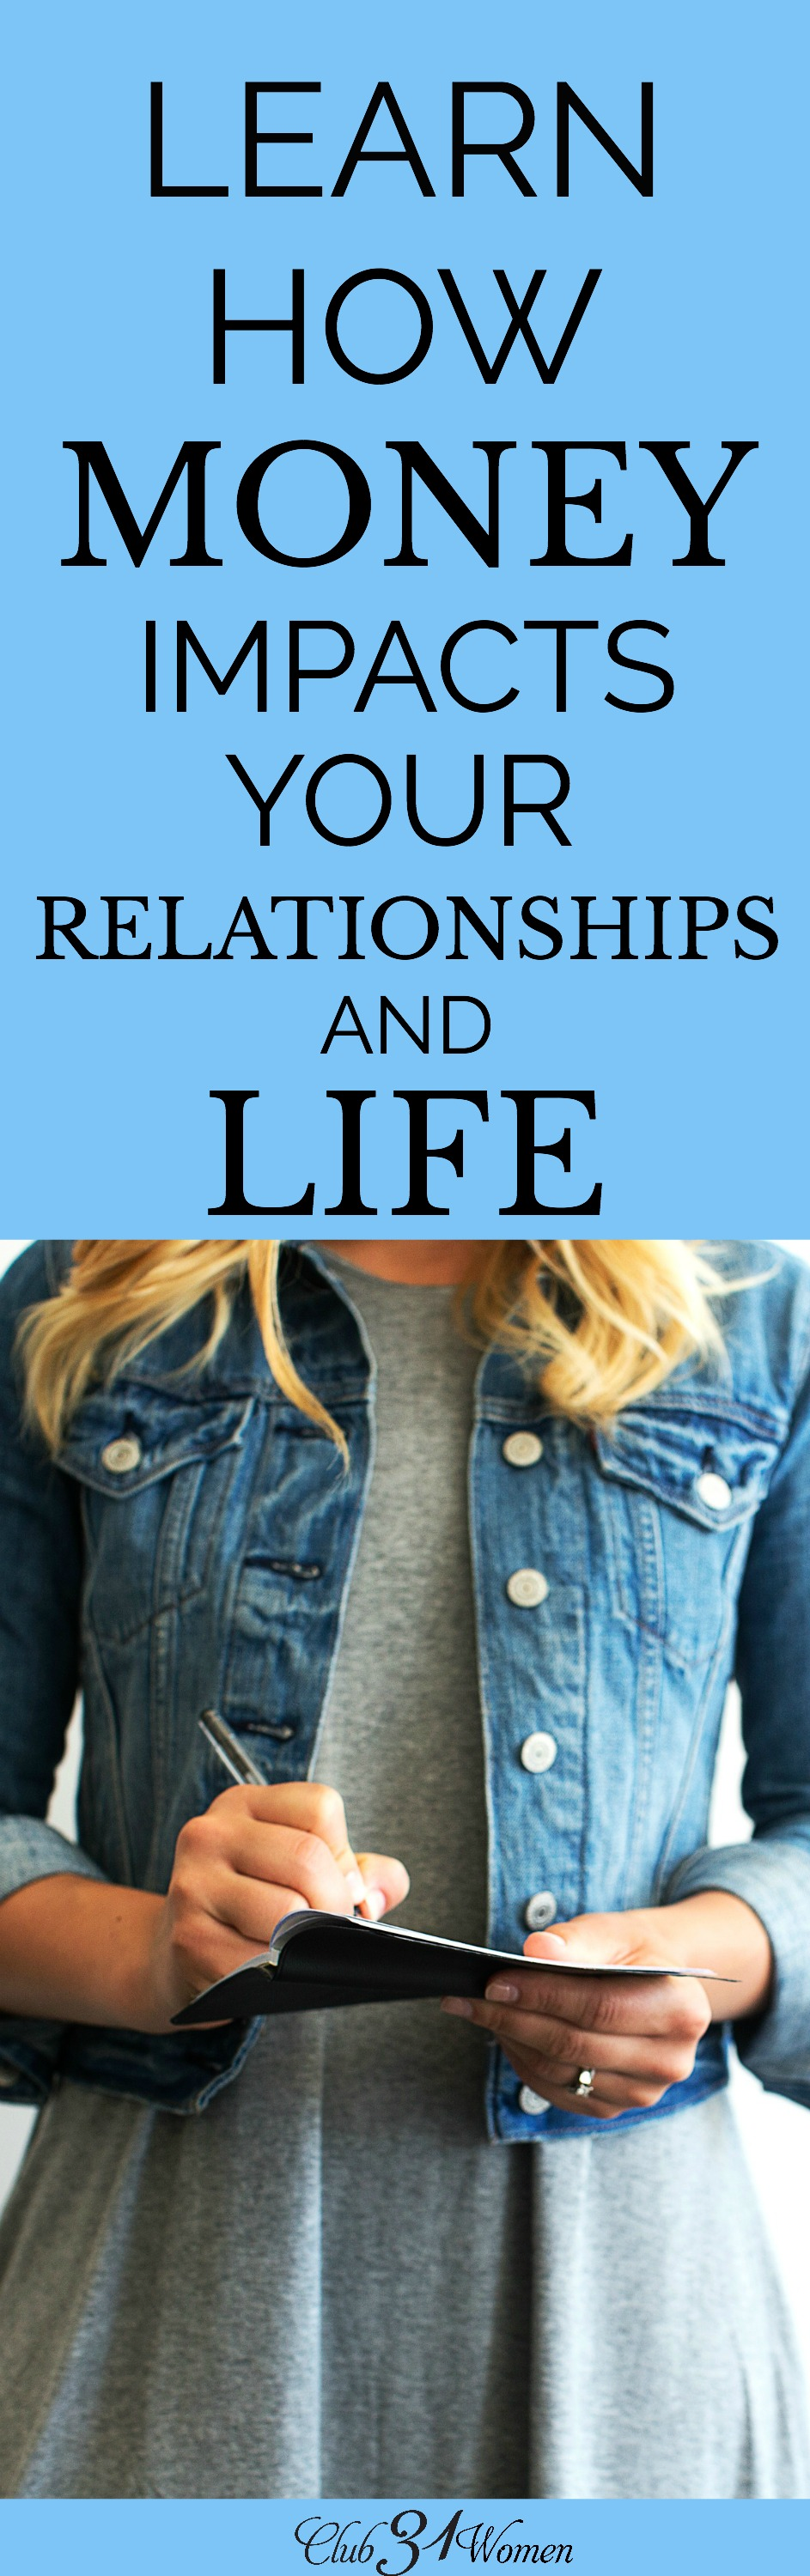 Are you looking for a fresh perspective about money? This offers powerful input on how your choices about money impact your relationships and your life. via @Club31Women